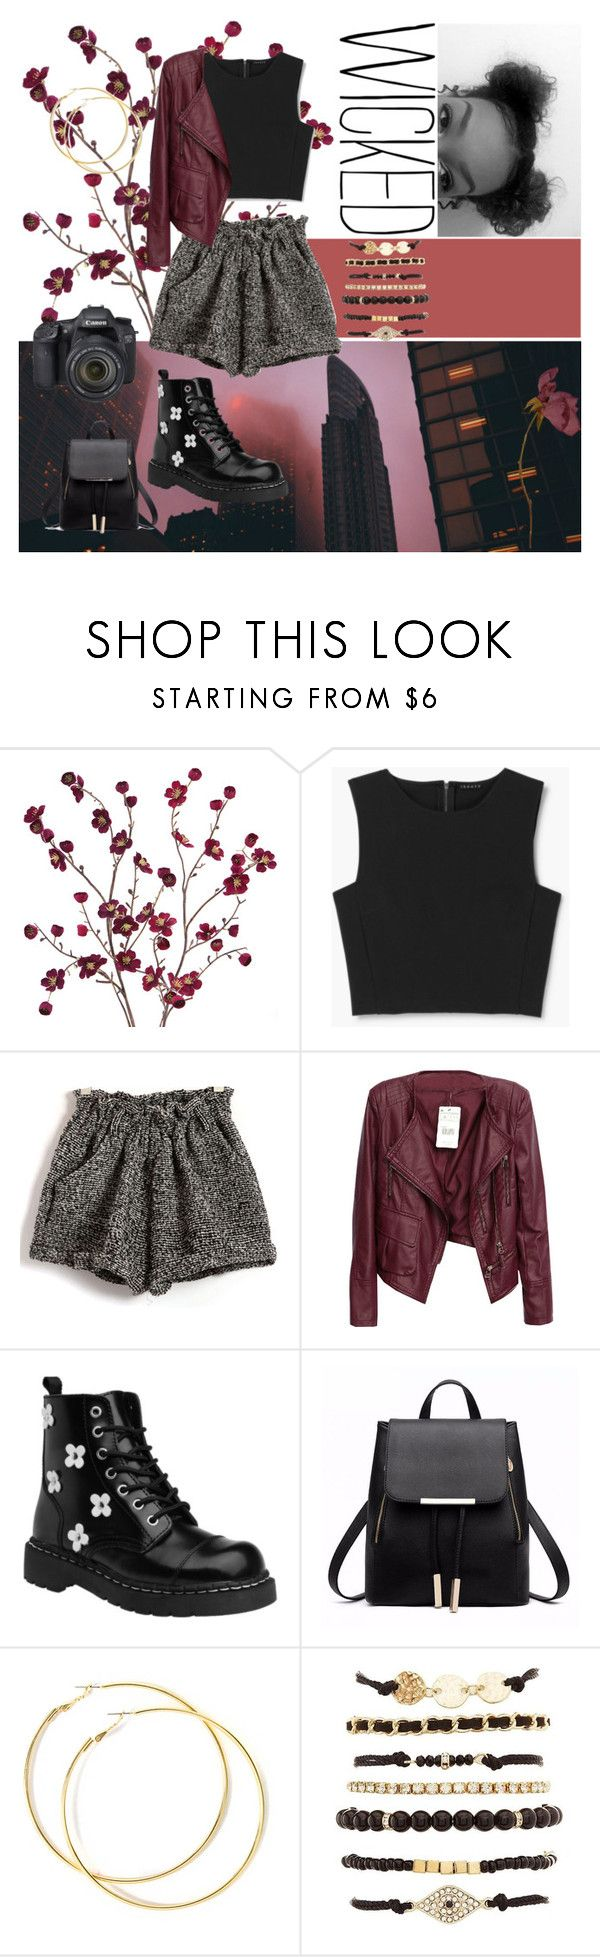 """""""Untitled #148"""" by prinutbutterjelly ❤ liked on Polyvore featuring Cost Plus World Market, Theory, T.U.K., Charlotte Russe and Eos"""